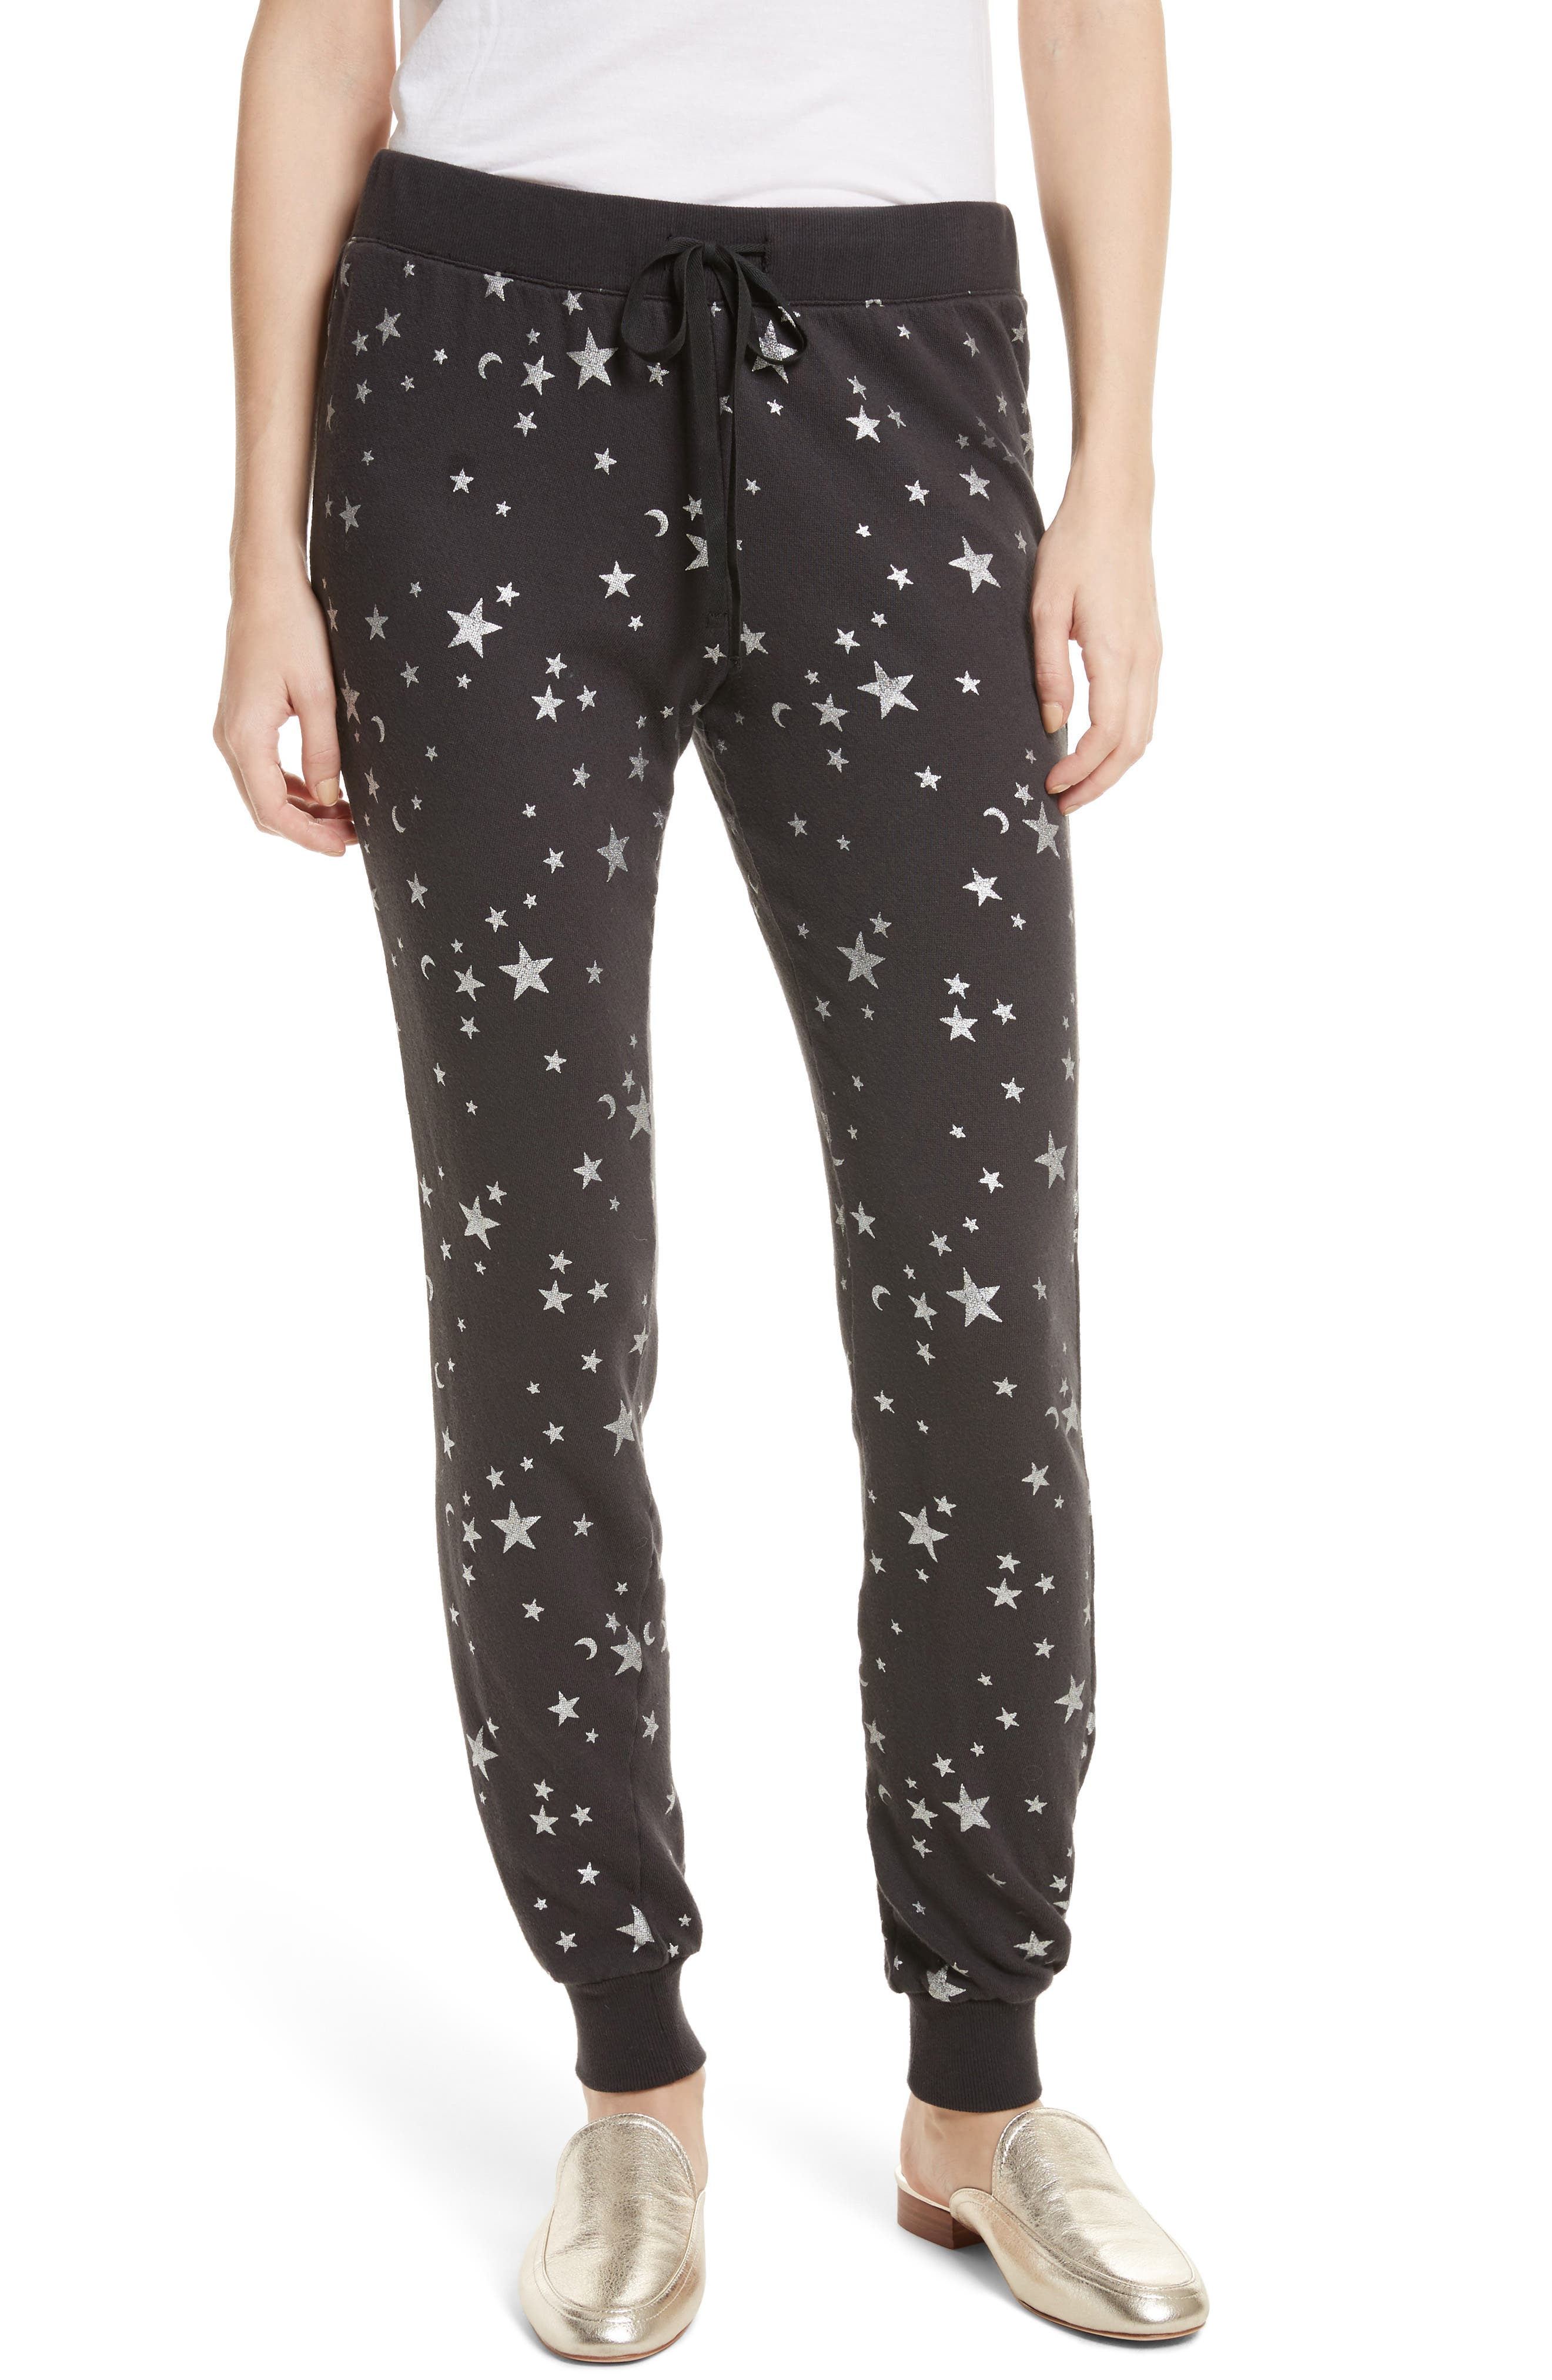 Tendra B Metallic Sweatpants,                             Main thumbnail 1, color,                             002